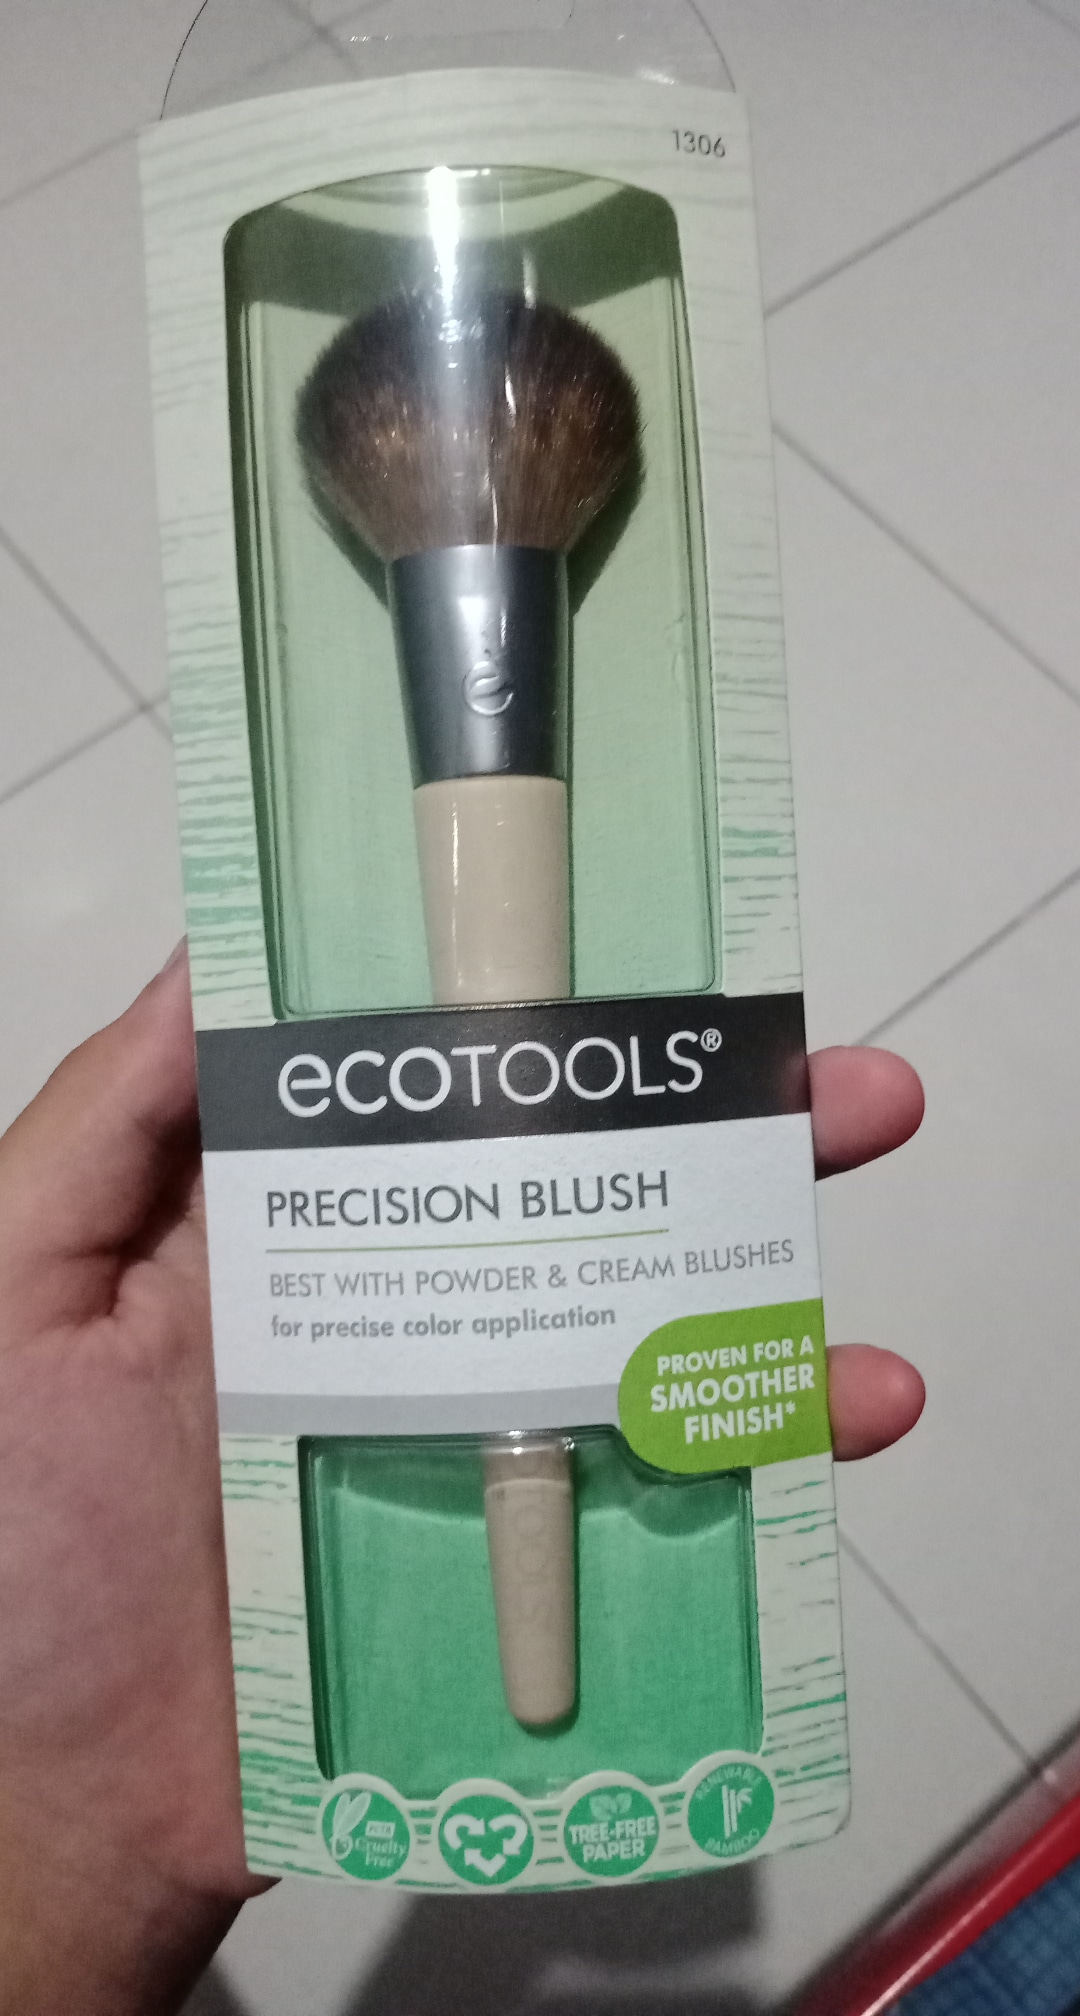 Ecotools 1306 Precision Blush Brush